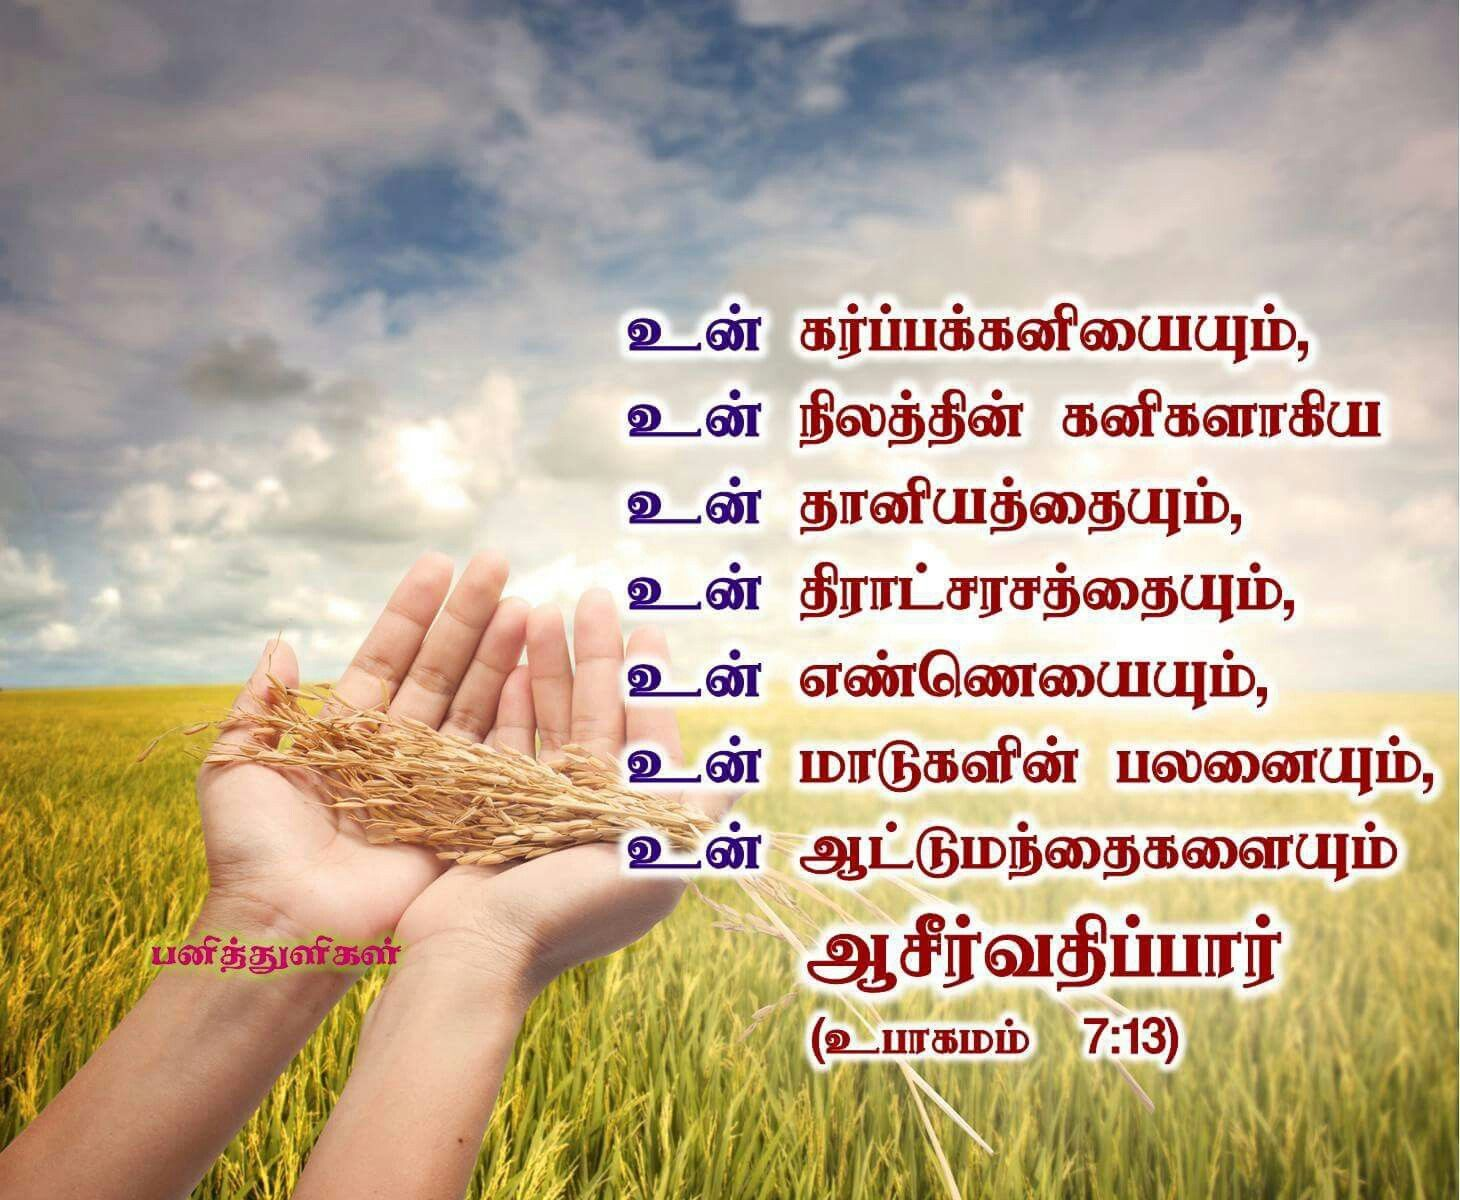 Our lord bless you | பனித்துளிகள்-Tamil bible verse ...